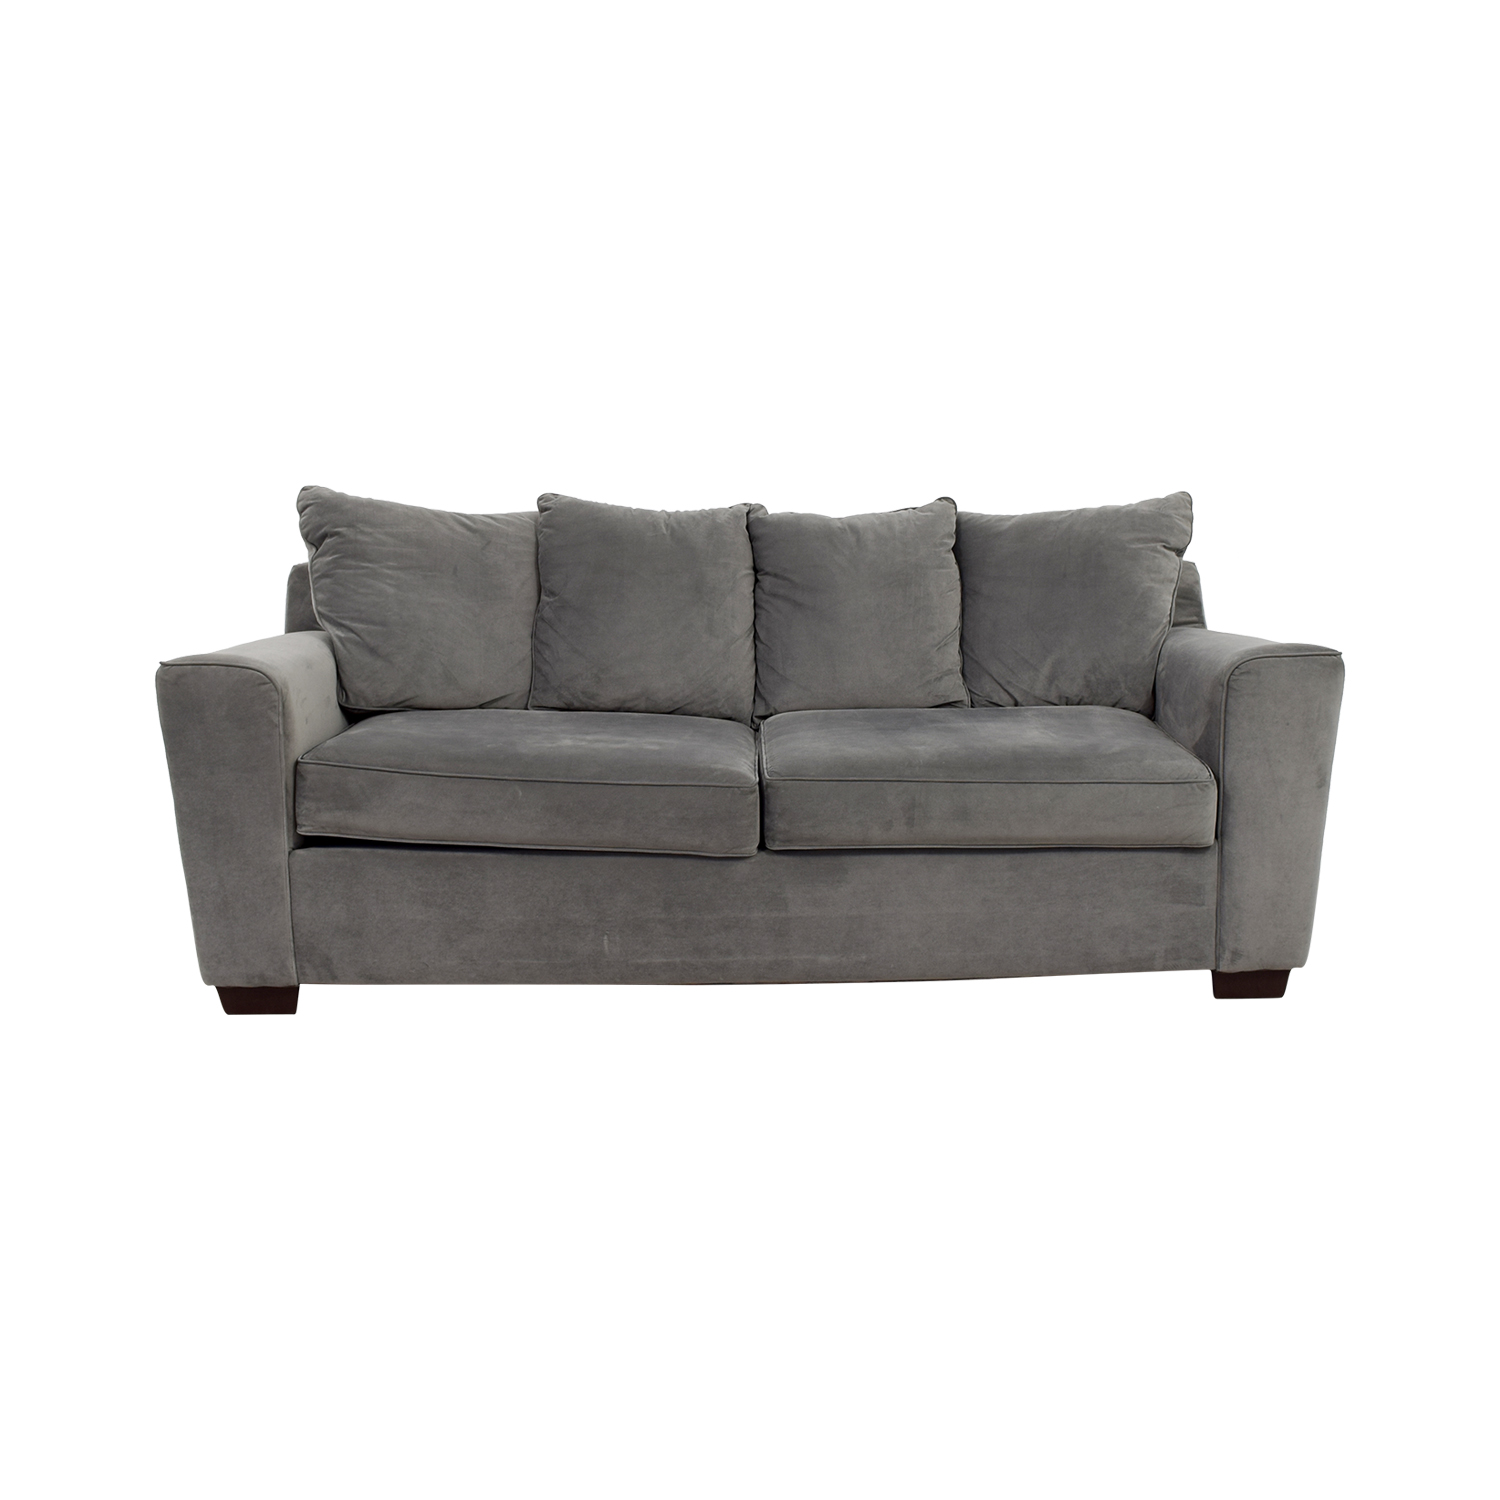 Jennifer convertible sofa marvelous jennifer leather sofa for Sectional sofa jennifer convertible